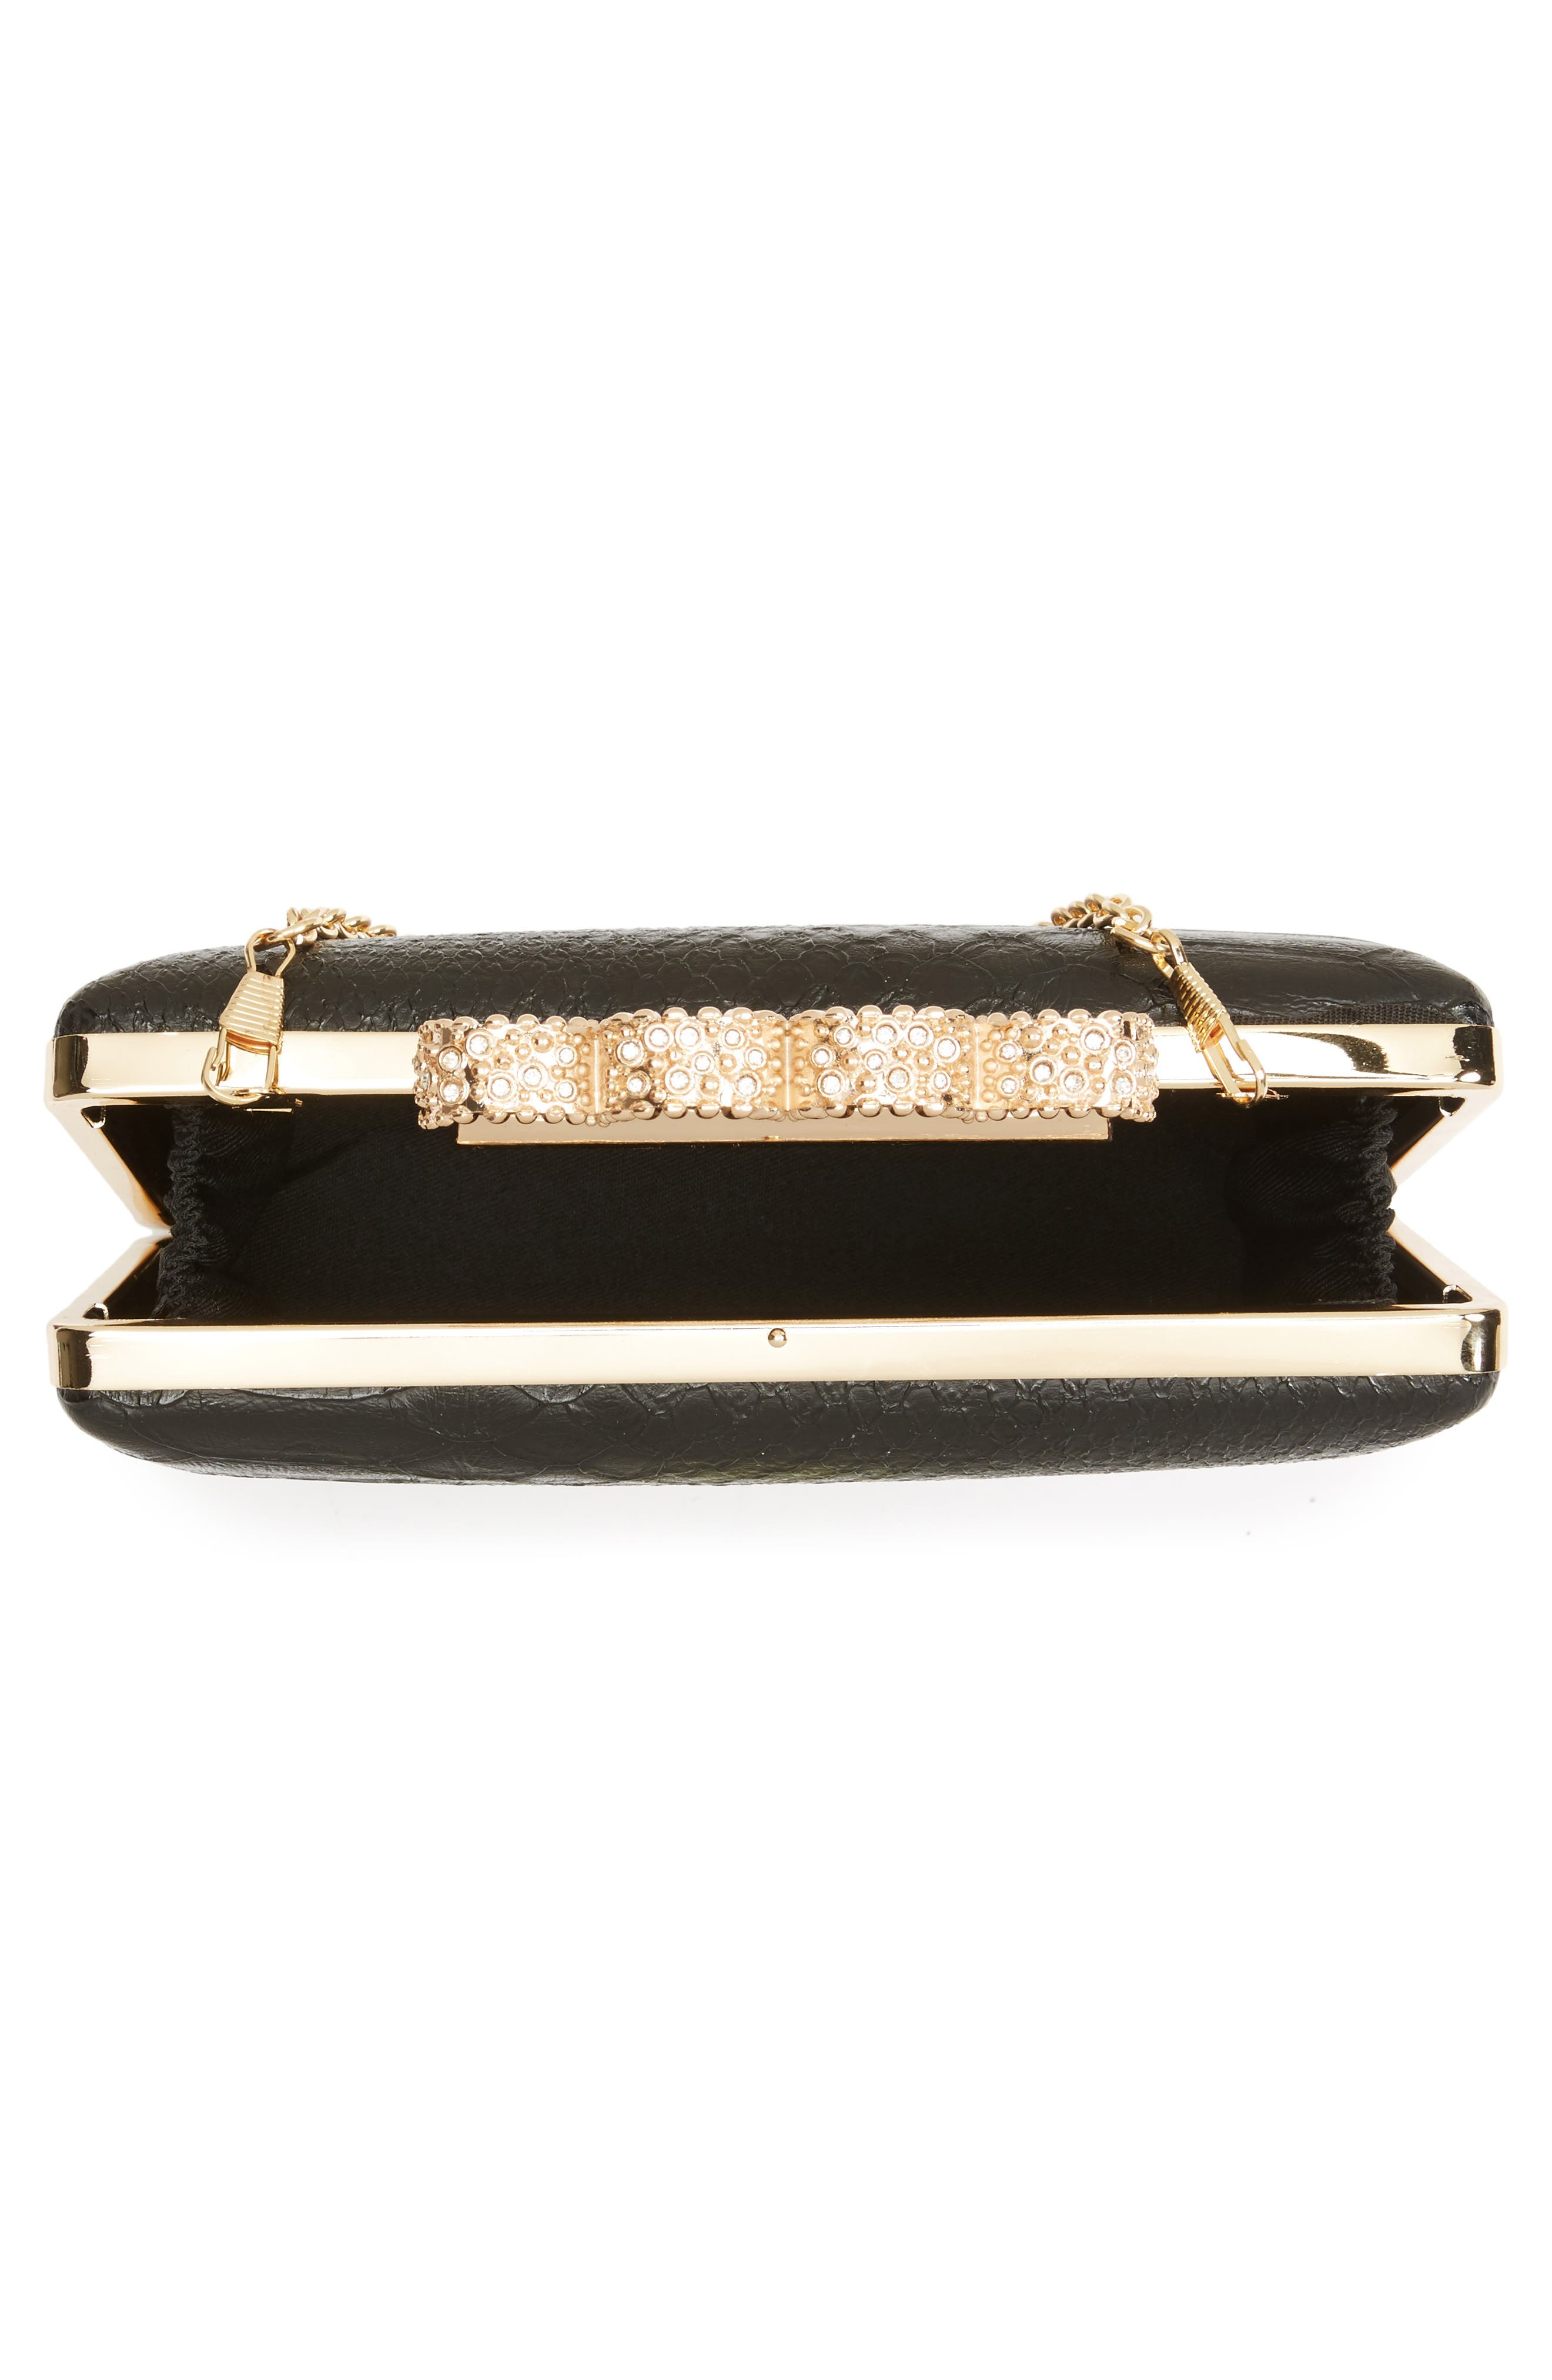 Knuckle Box Clutch,                             Alternate thumbnail 4, color,                             Gold/ Black